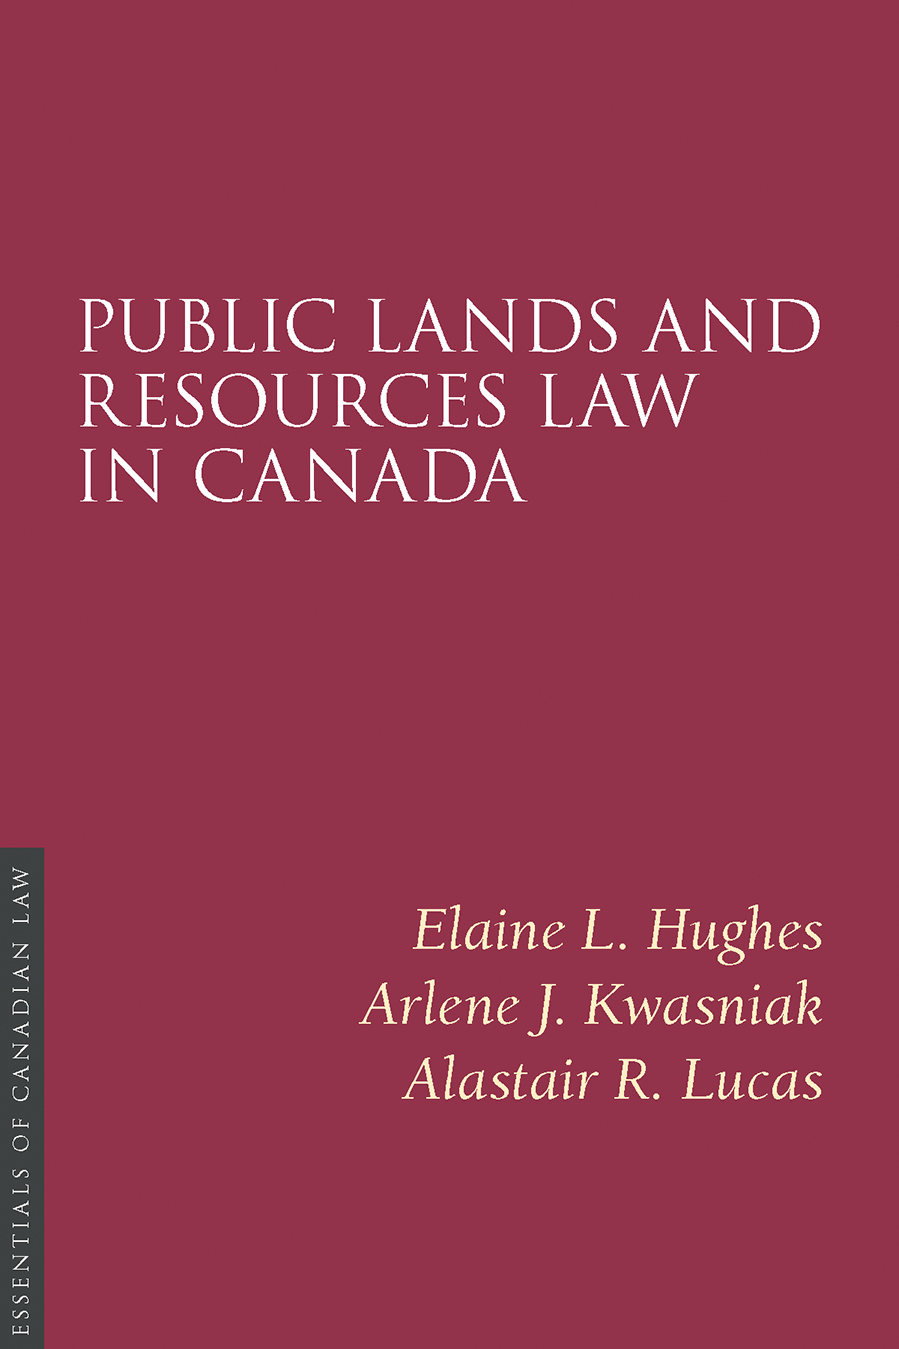 Public Lands and Resources Law in Canada